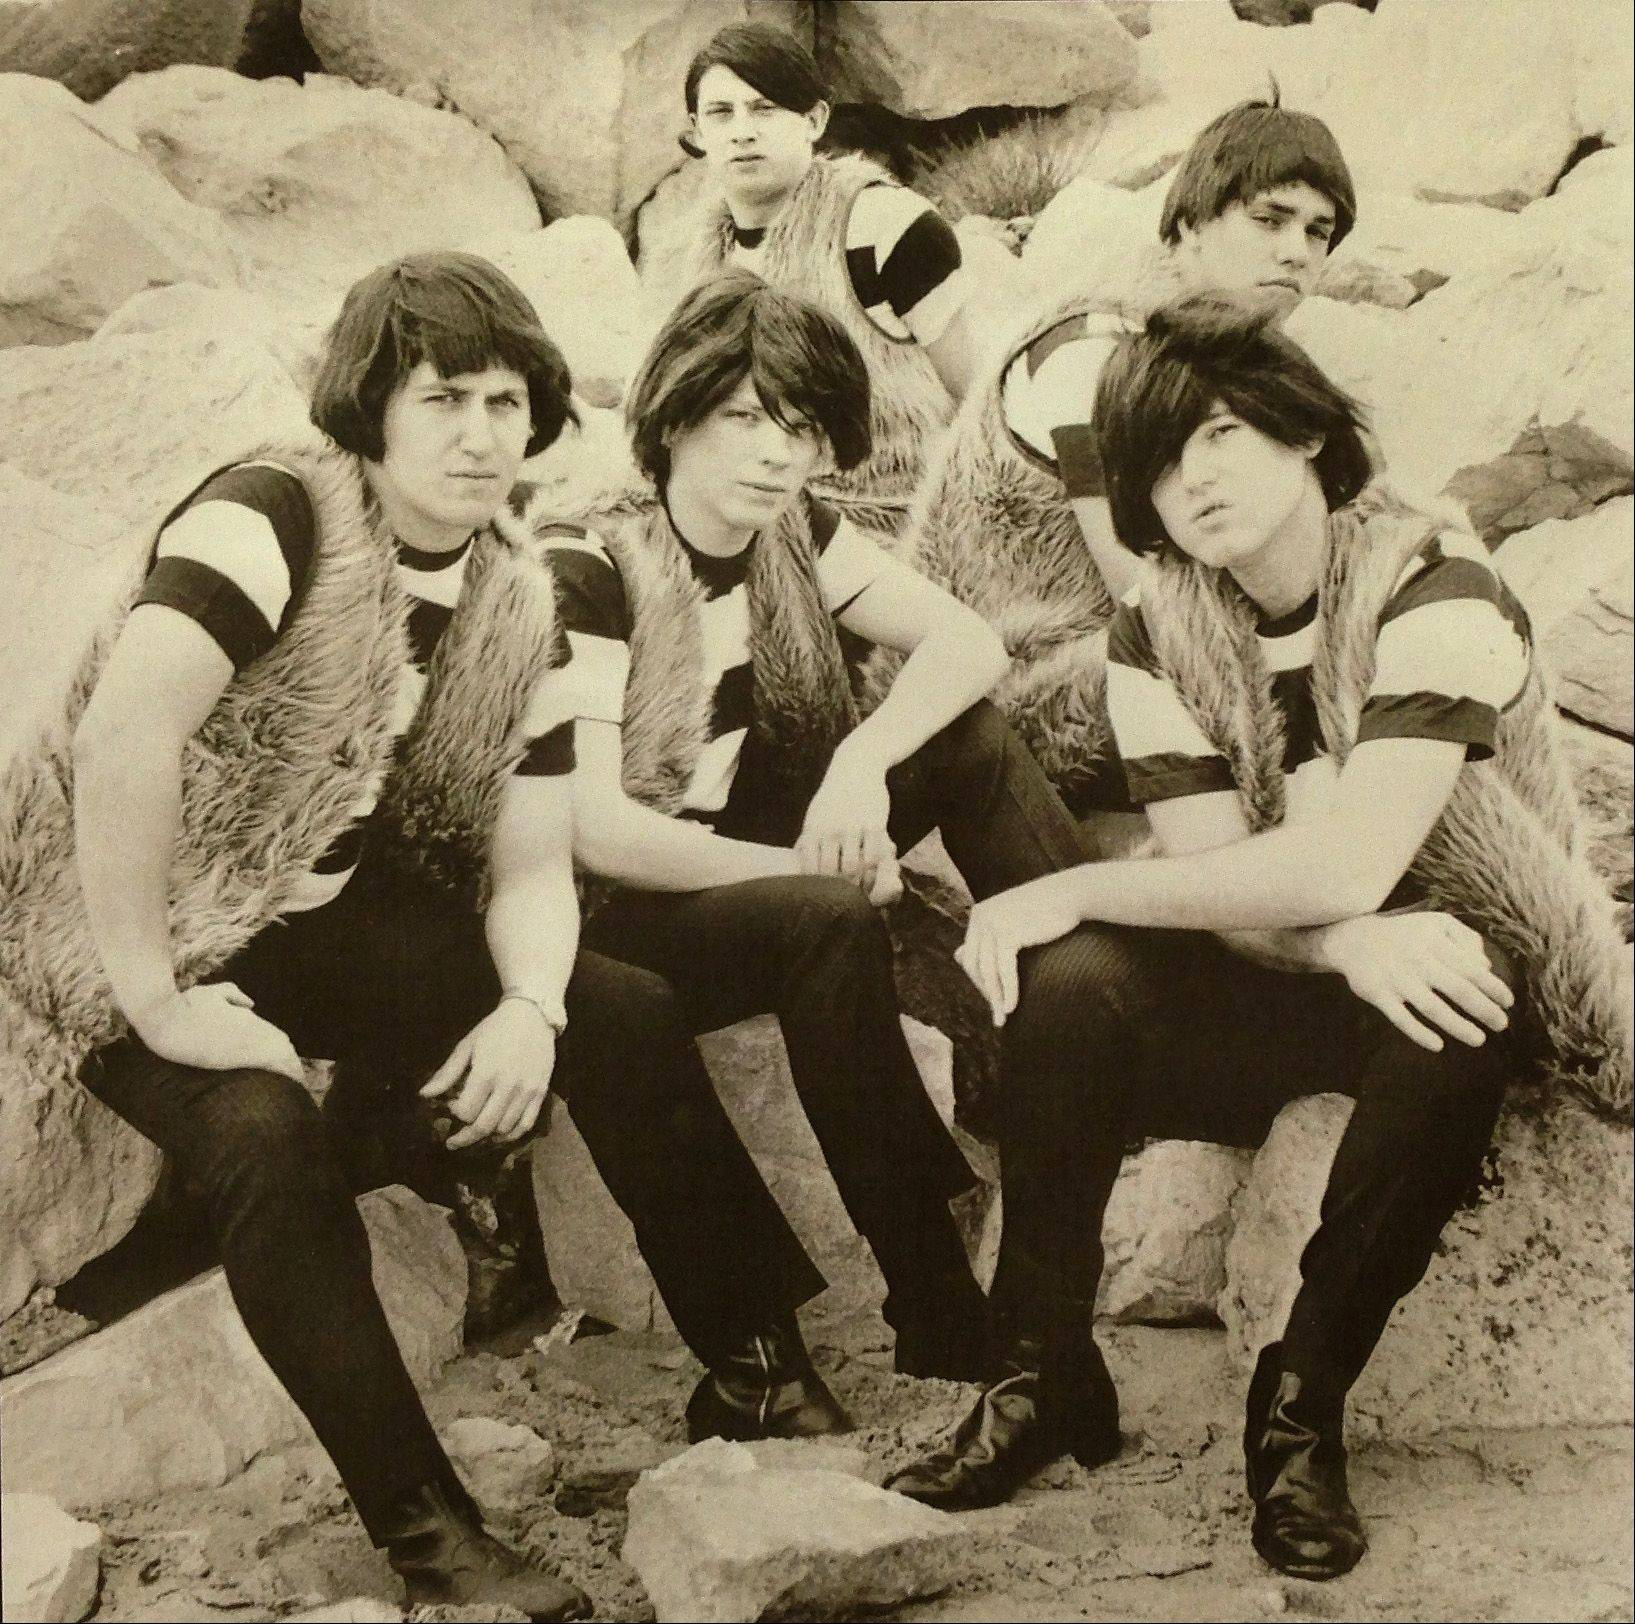 Gary Goldberg, far left, appears in a late 1960s publicity photo with the Cave Dwellers.